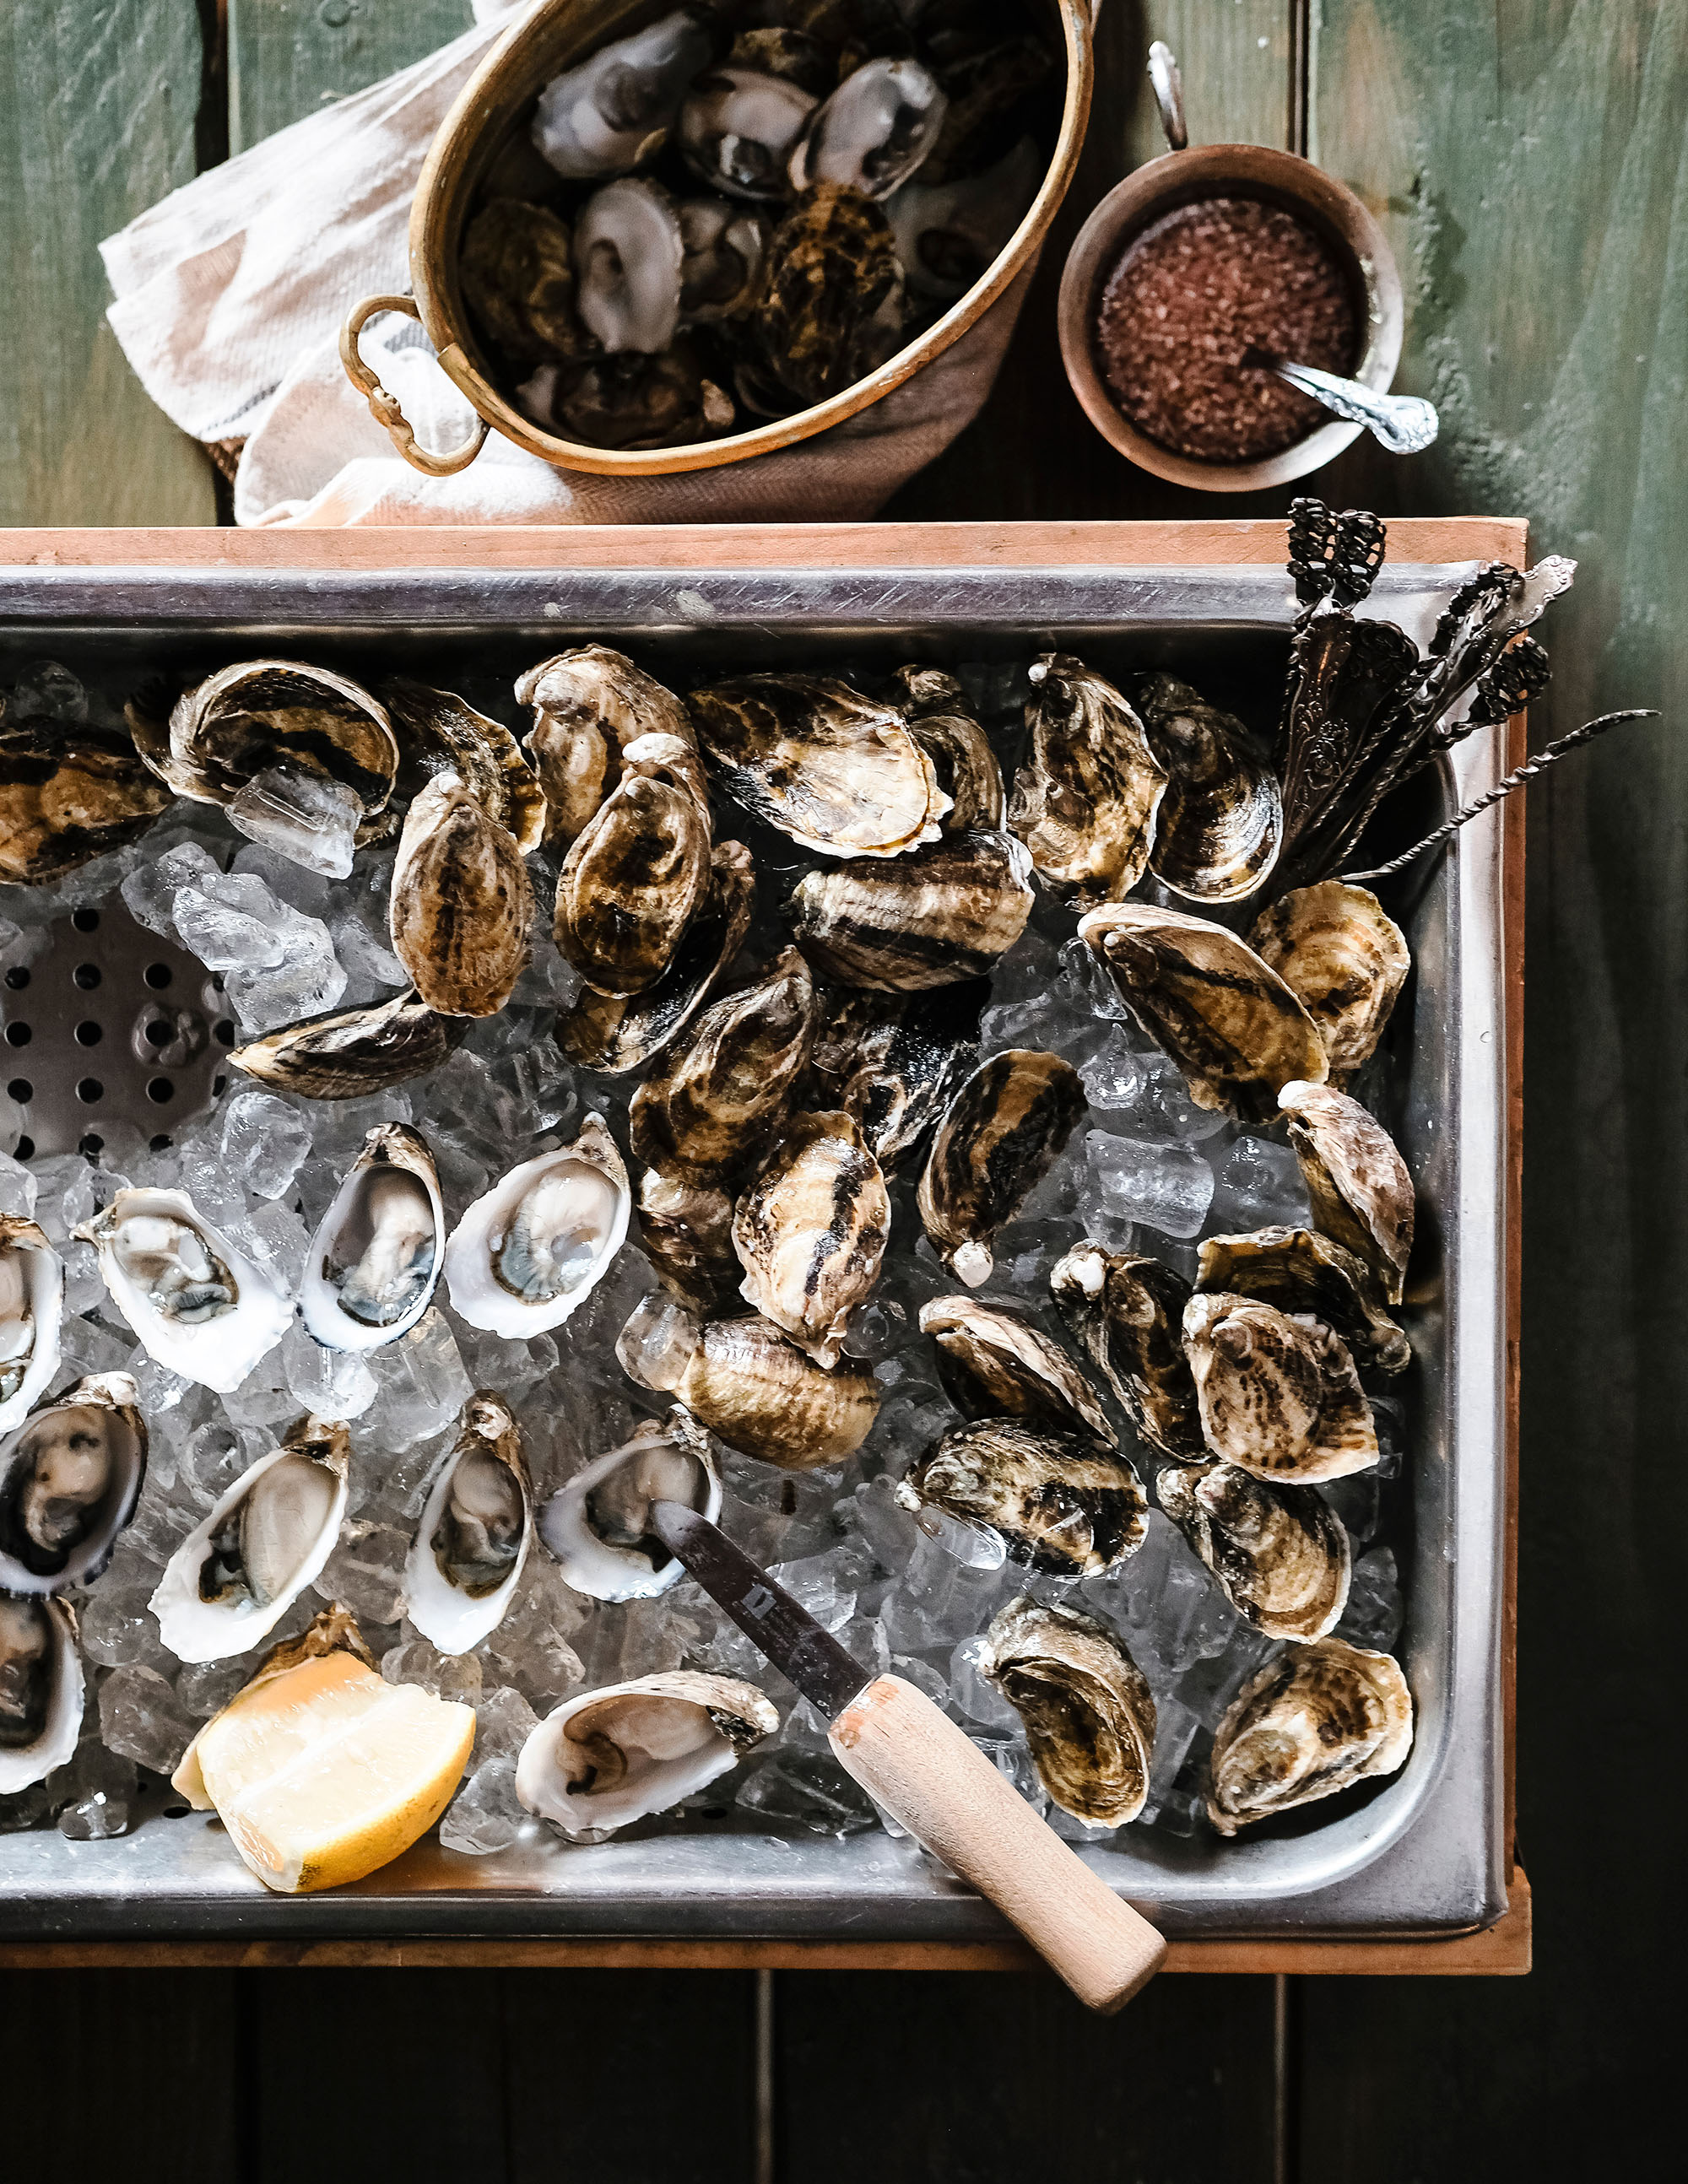 oysters-ginger-shallot-mignonette-su.jpg